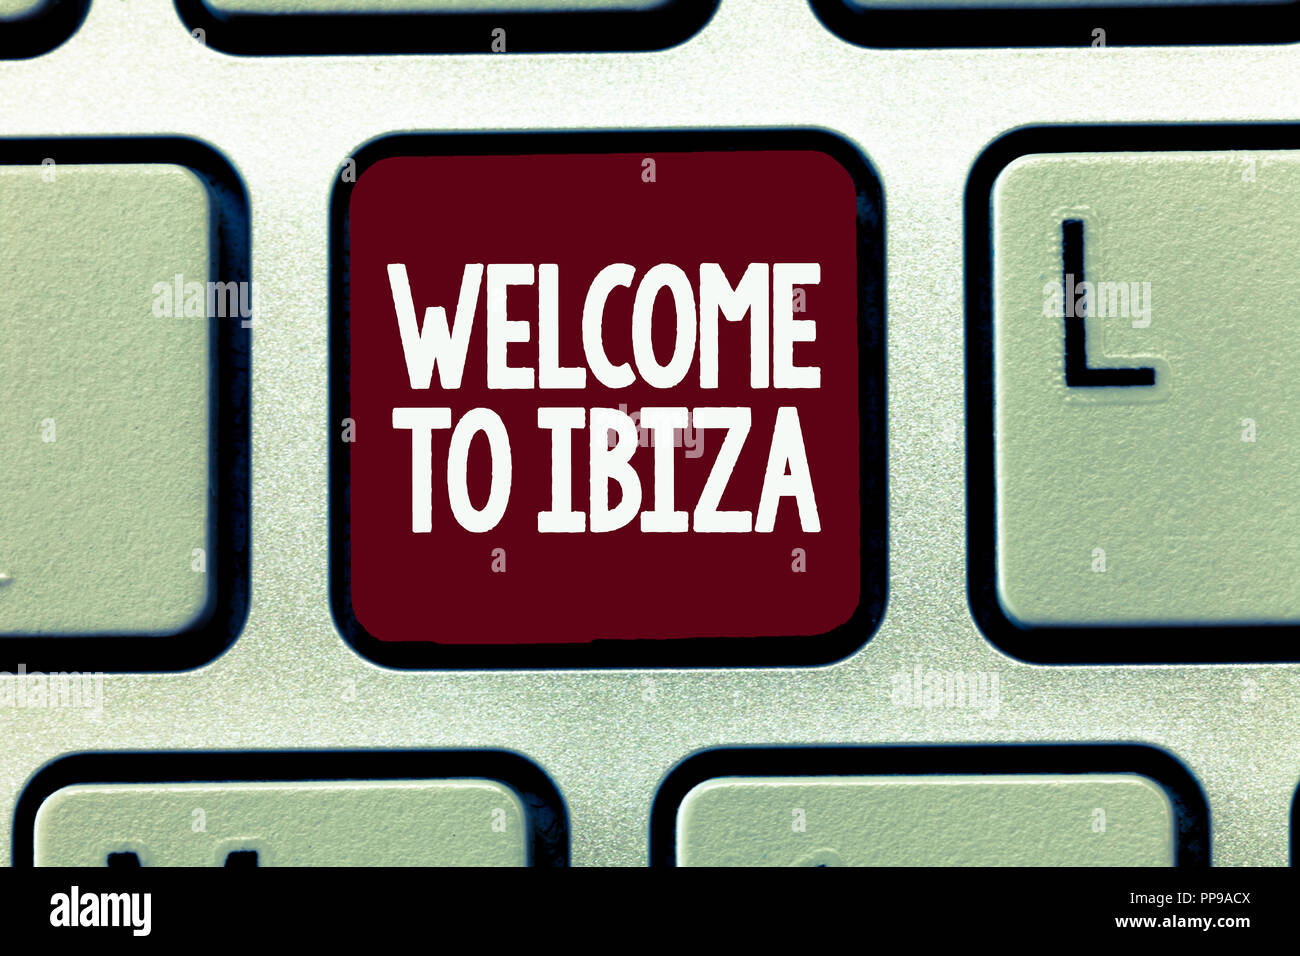 Greetings From Spain Stock Photos Greetings From Spain Stock